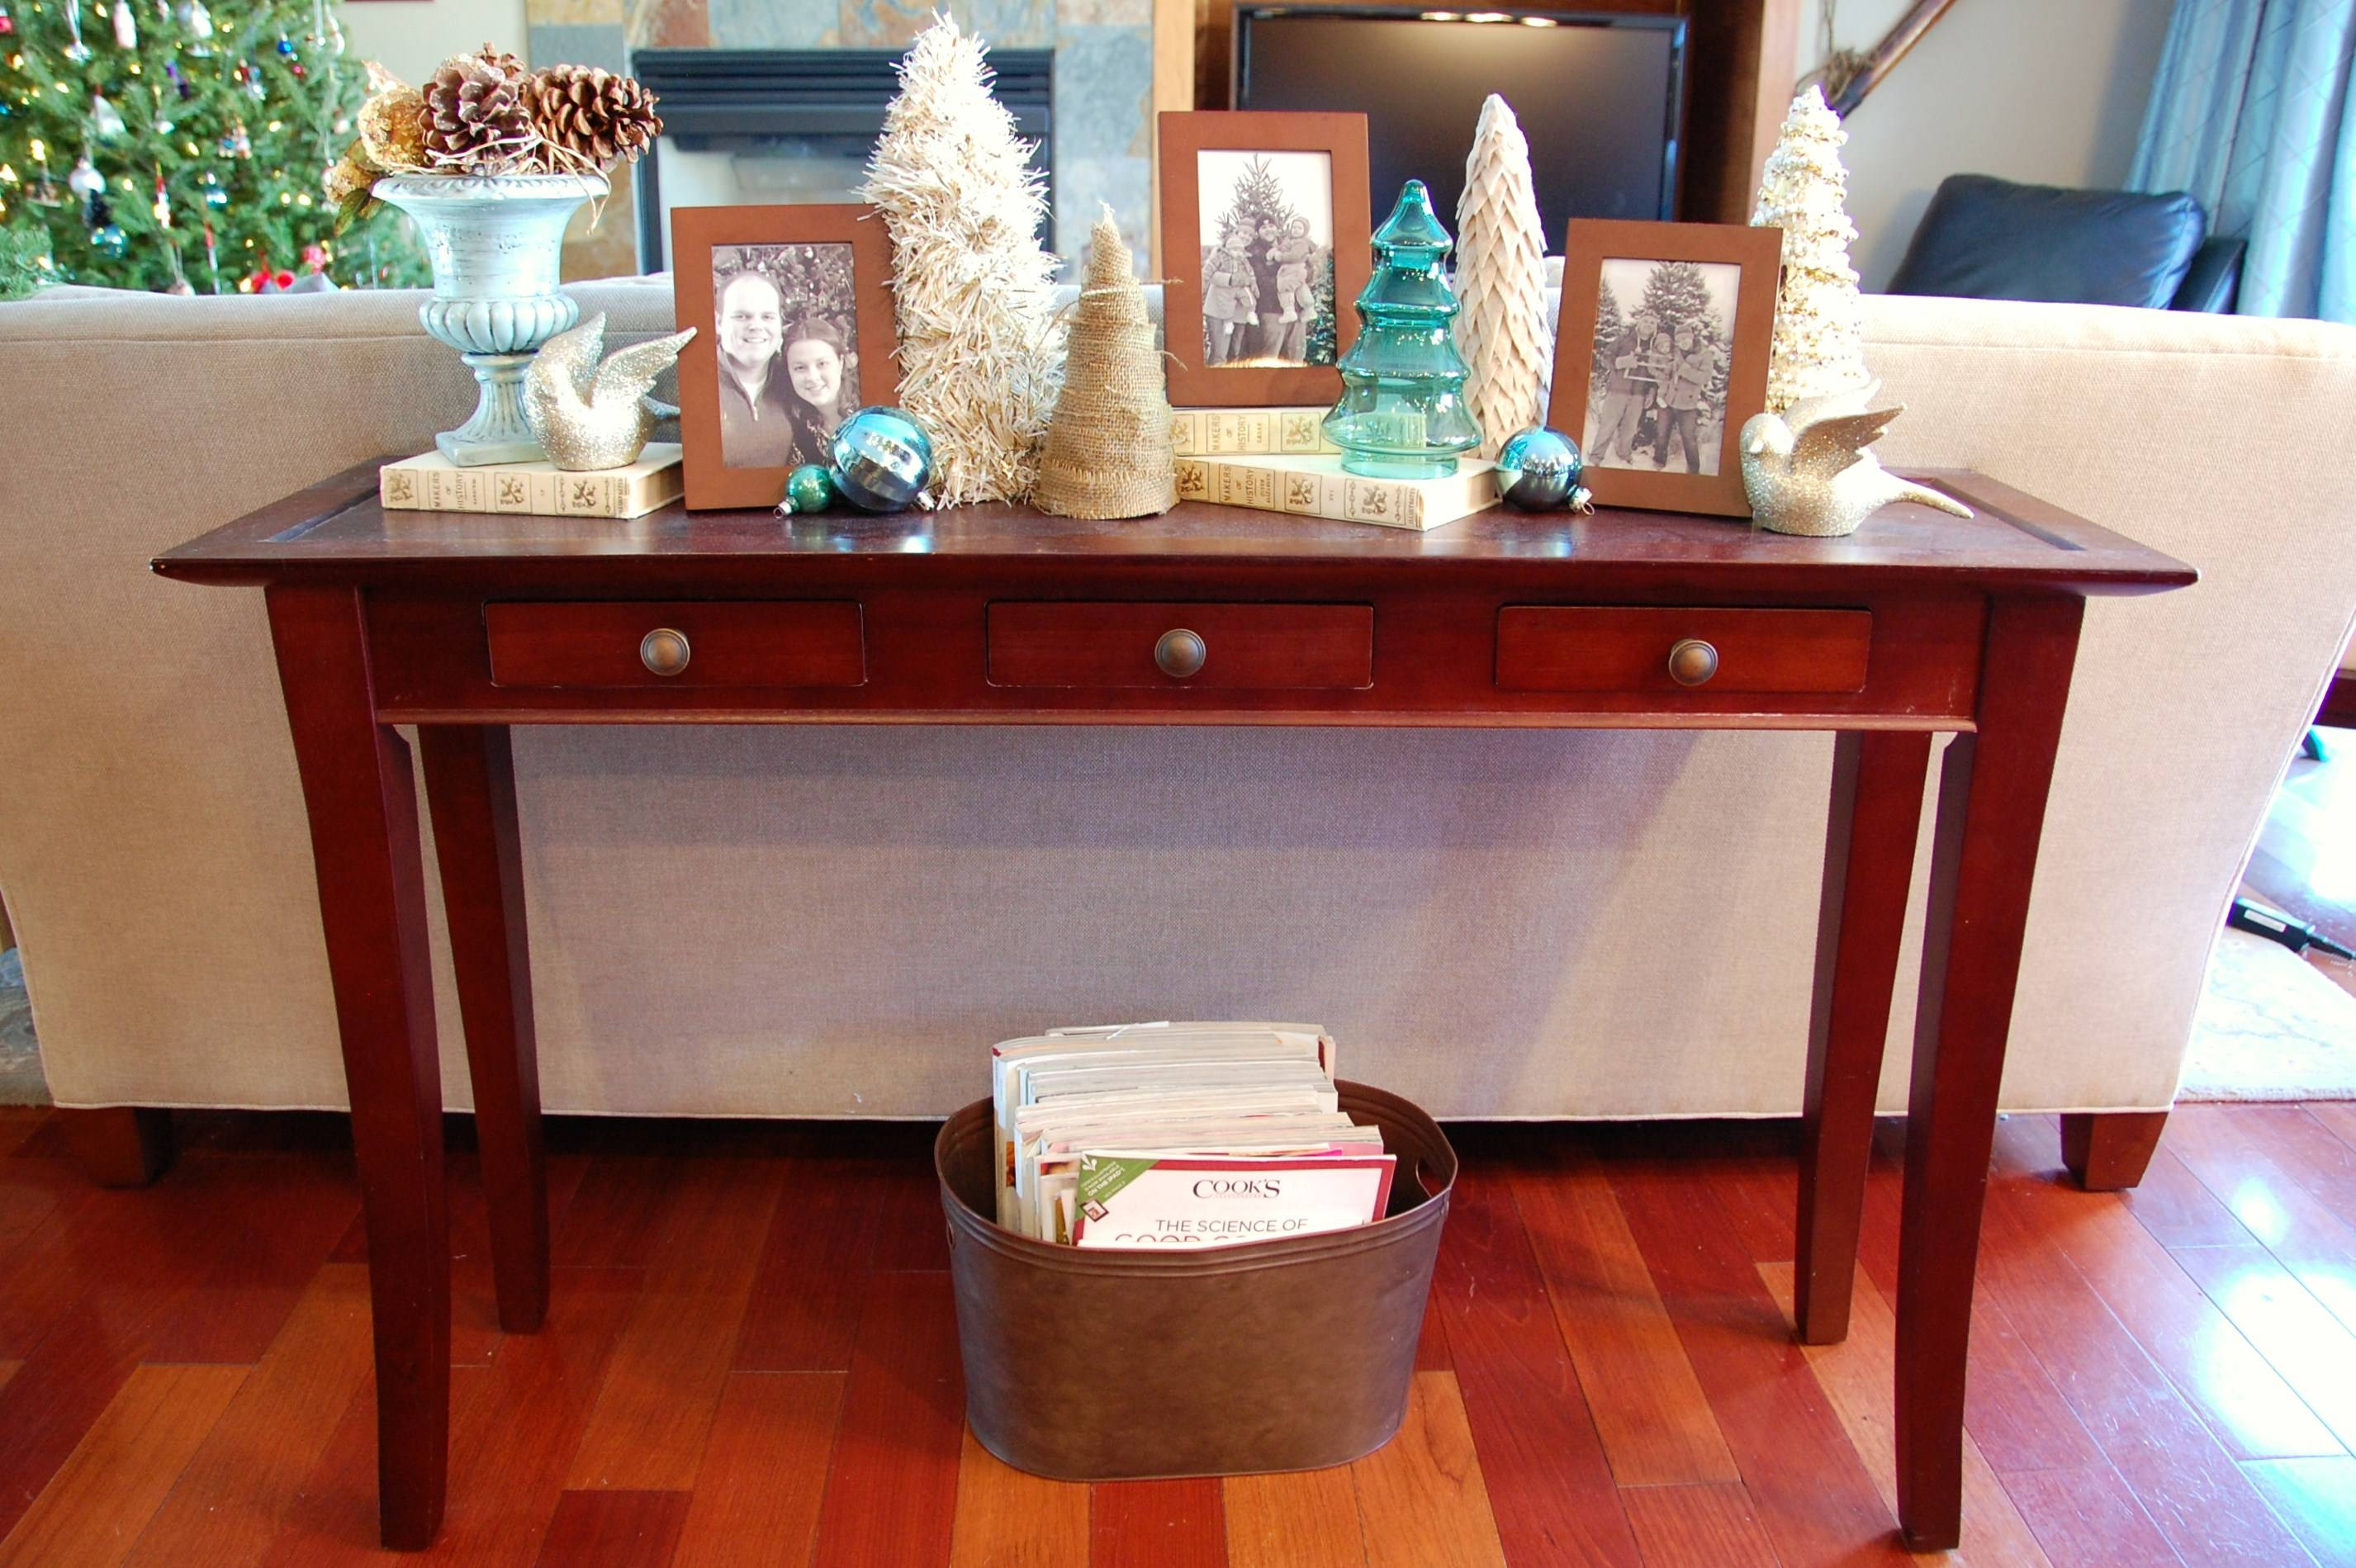 Sofa Table Design: Sofa Table Christmas Decorating Ideas Red Maple within Red Sofa Tables (Image 12 of 15)